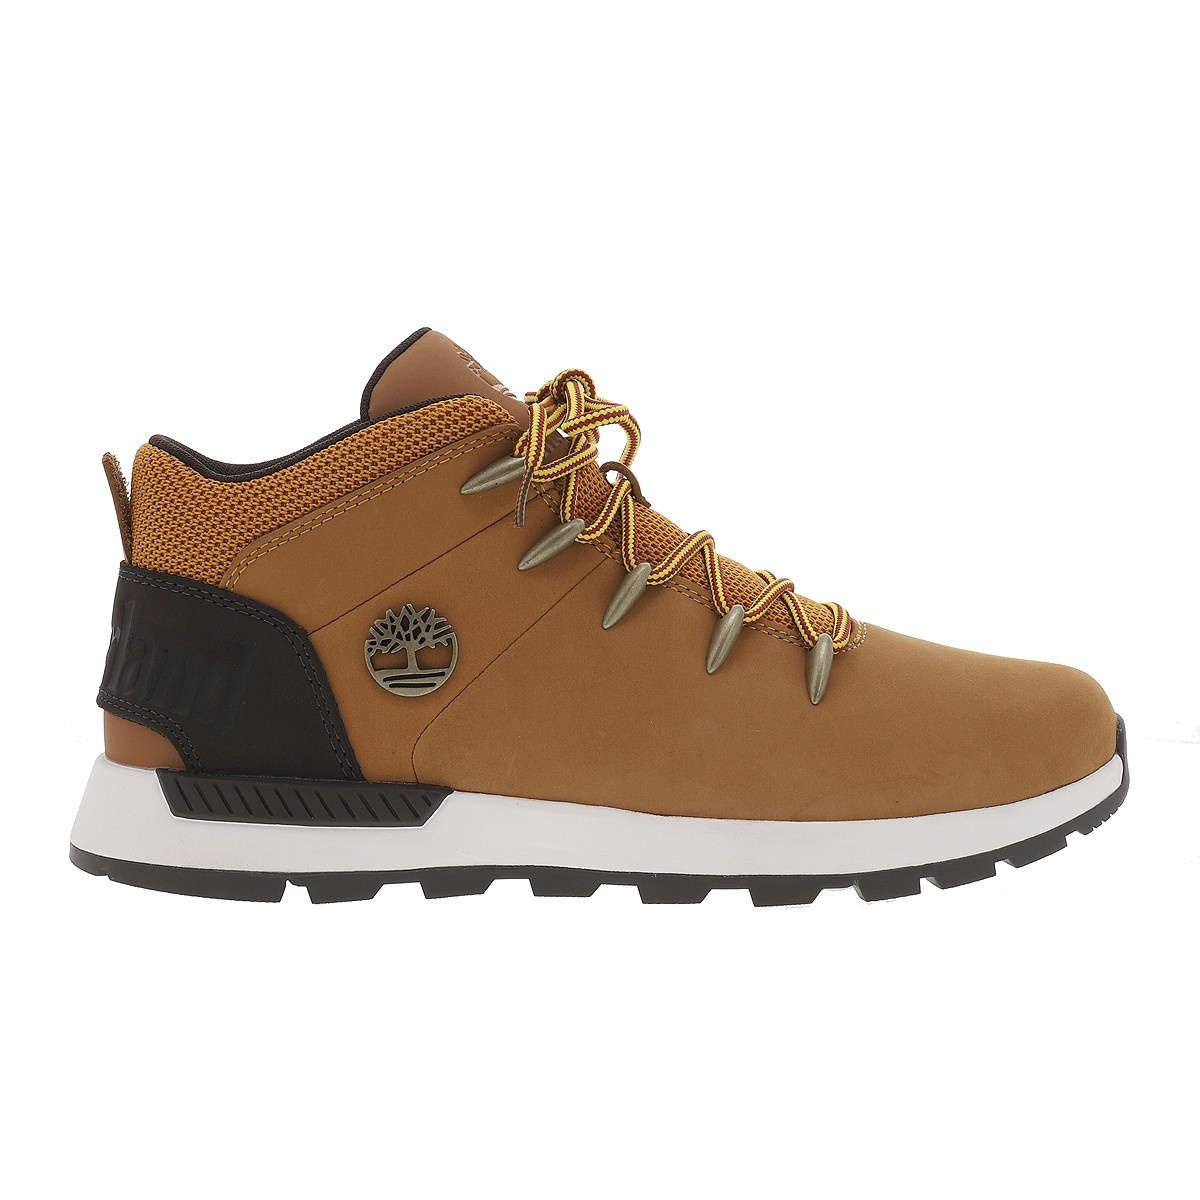 Boots montantes cuir TREKKER MID TB TIMBERLAND